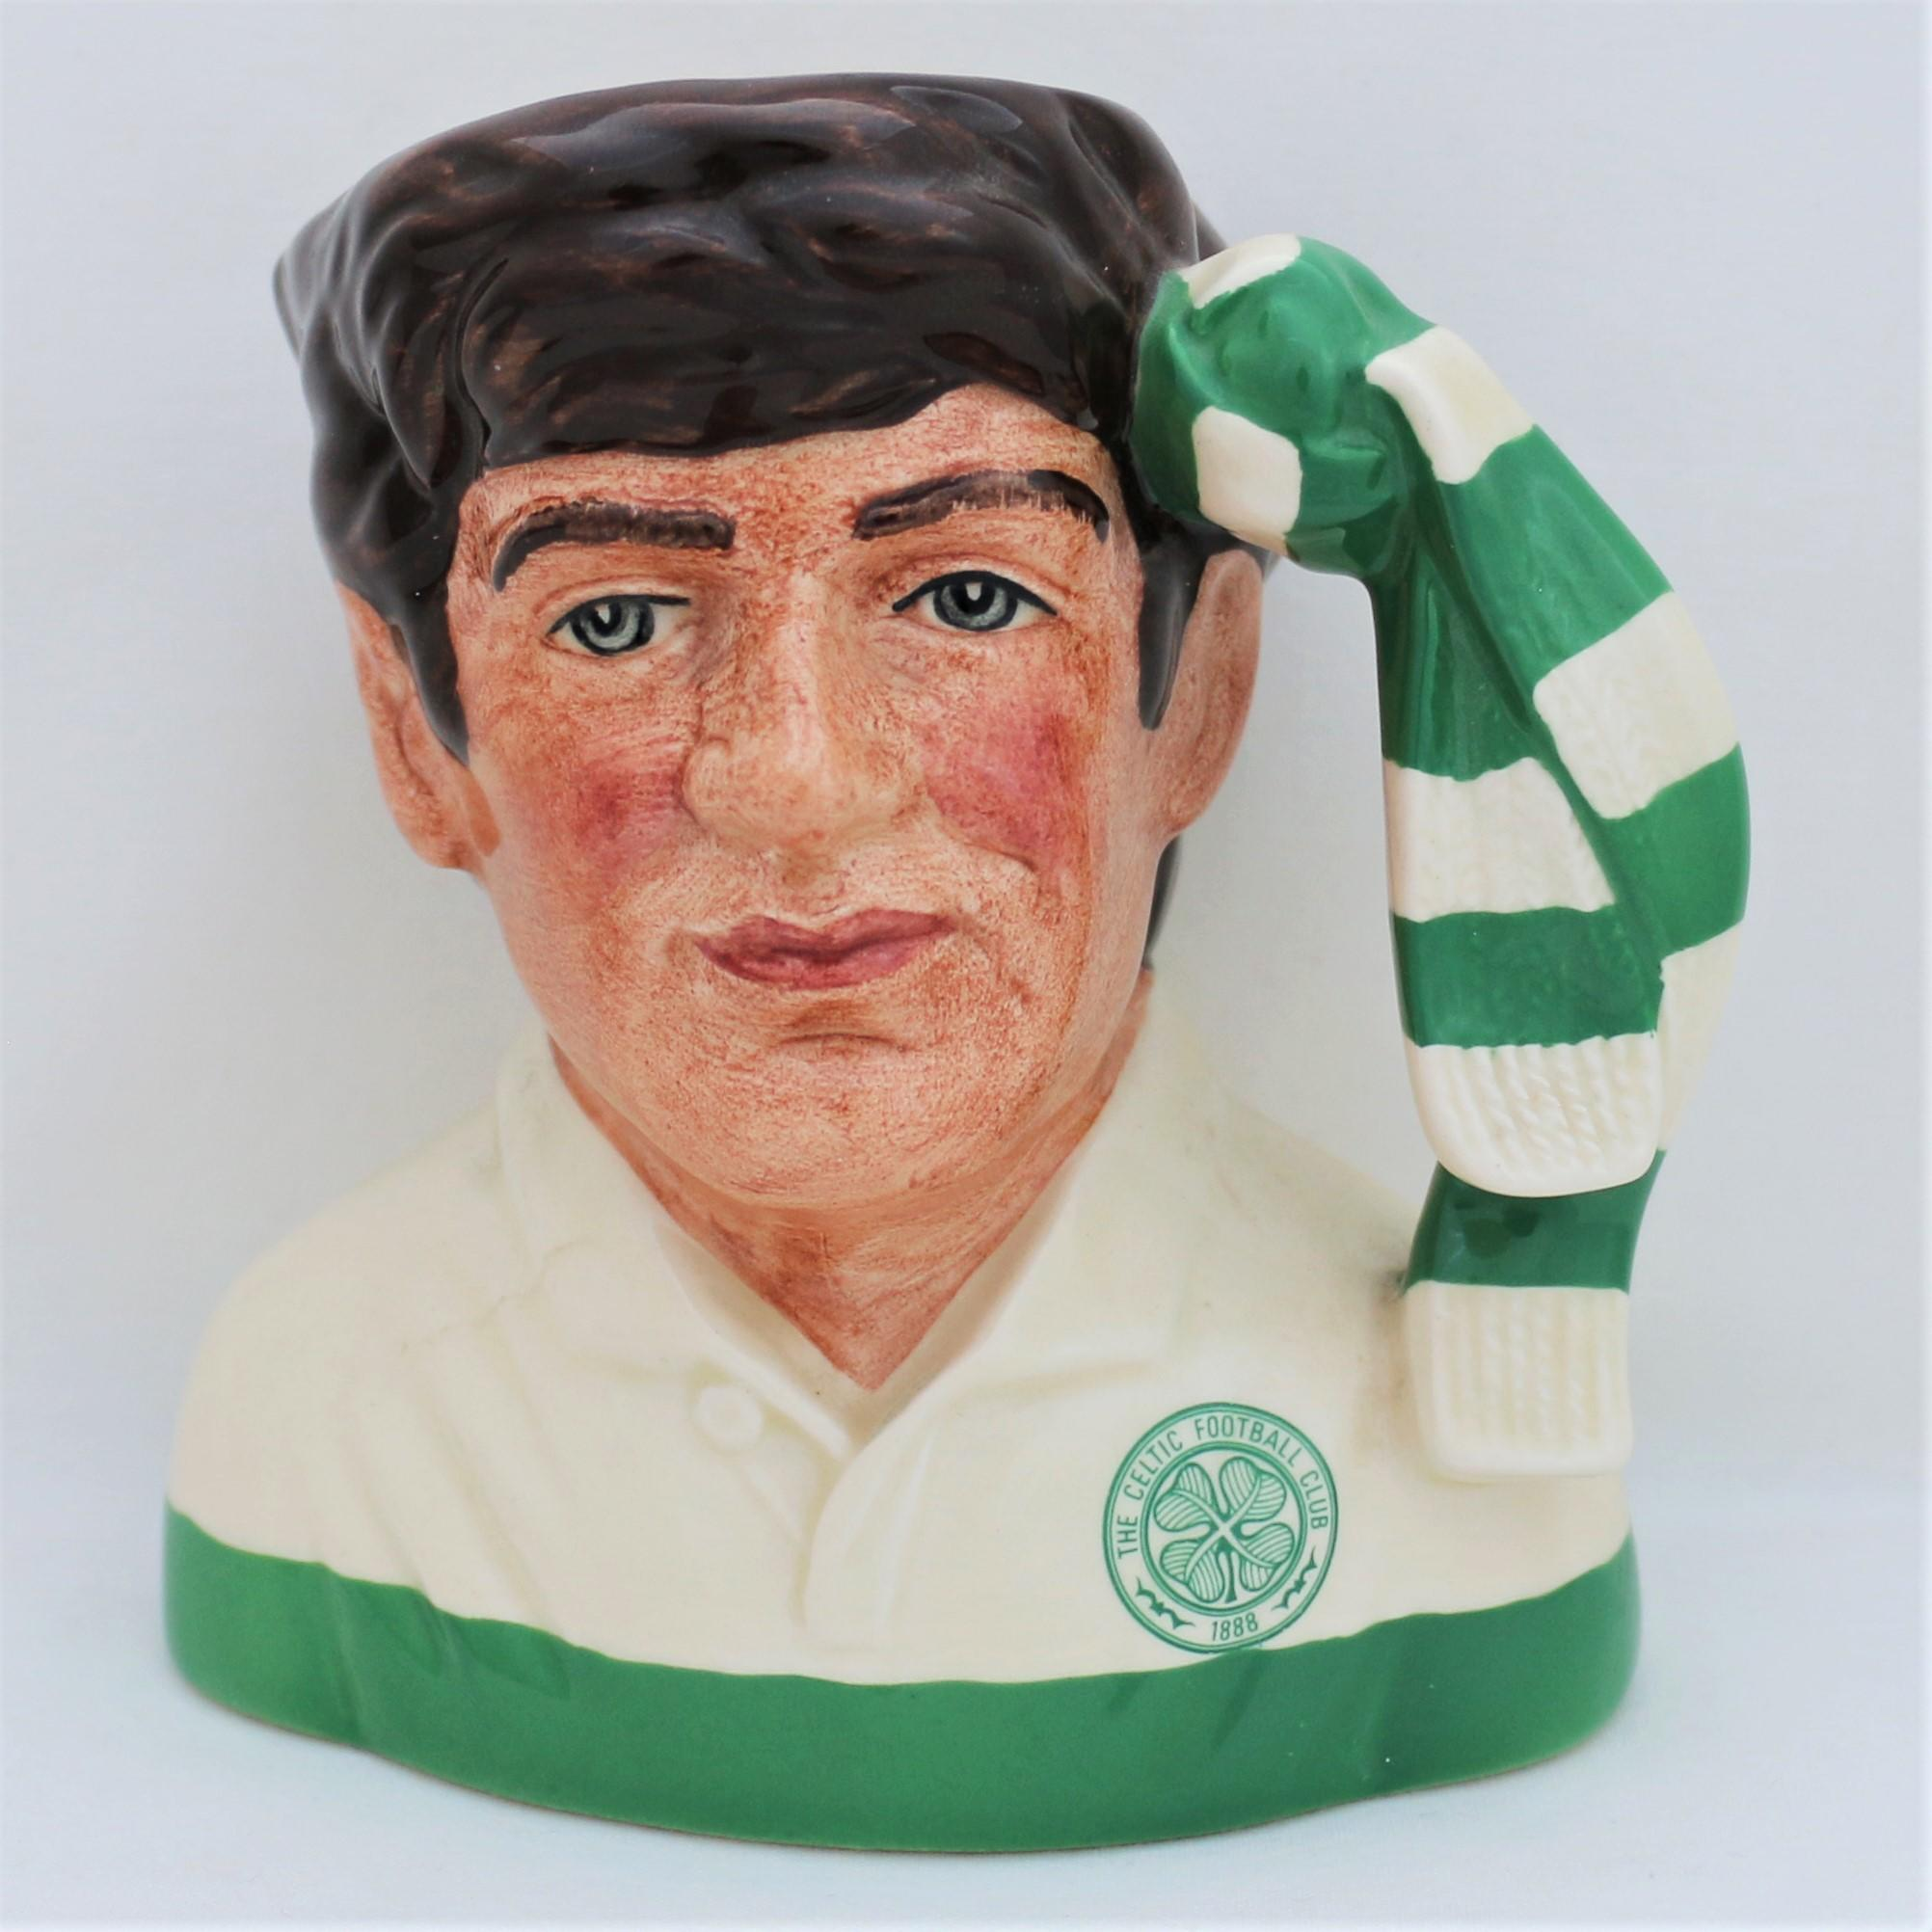 Royal Doulton D6925 Celtic Football Supporter Character Jug - front